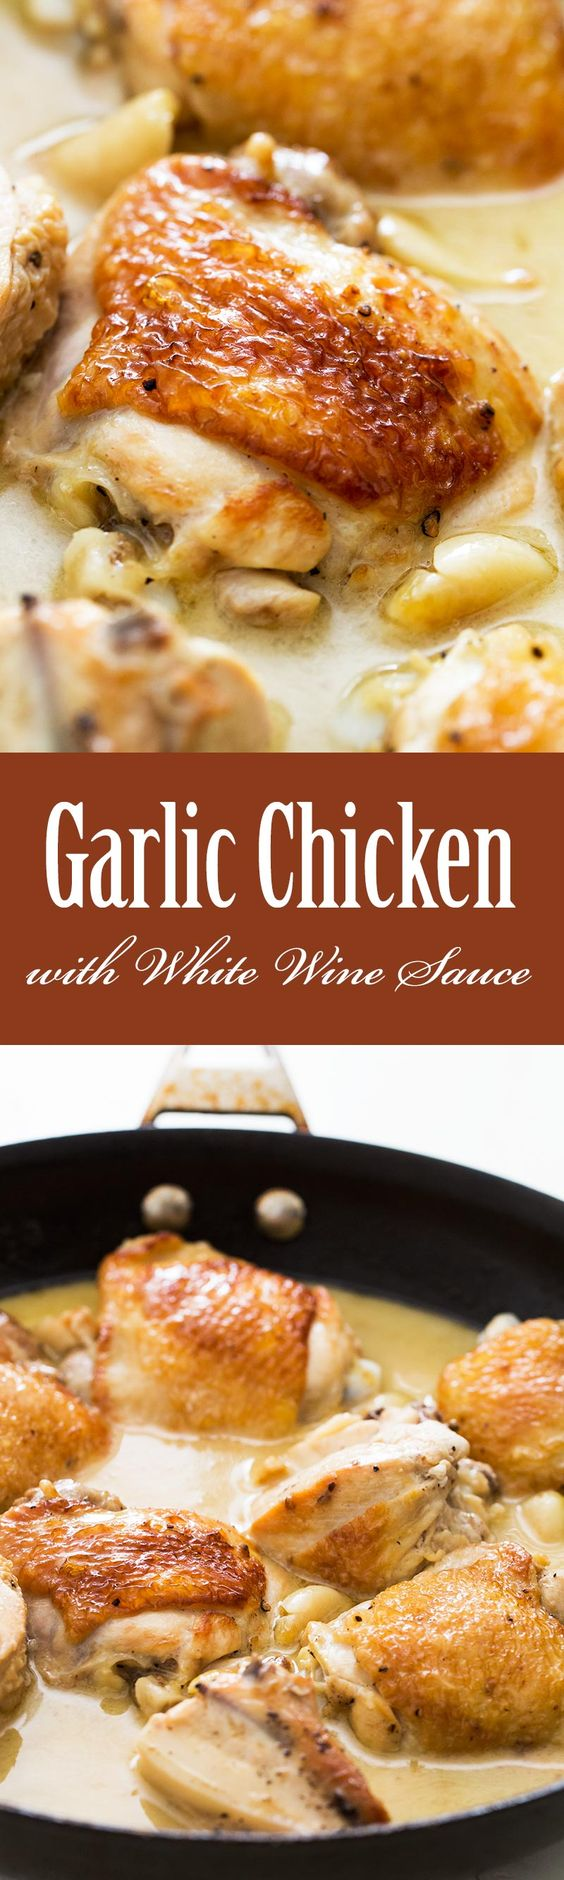 Garlic Chicken with White Wine Sauce | Recept